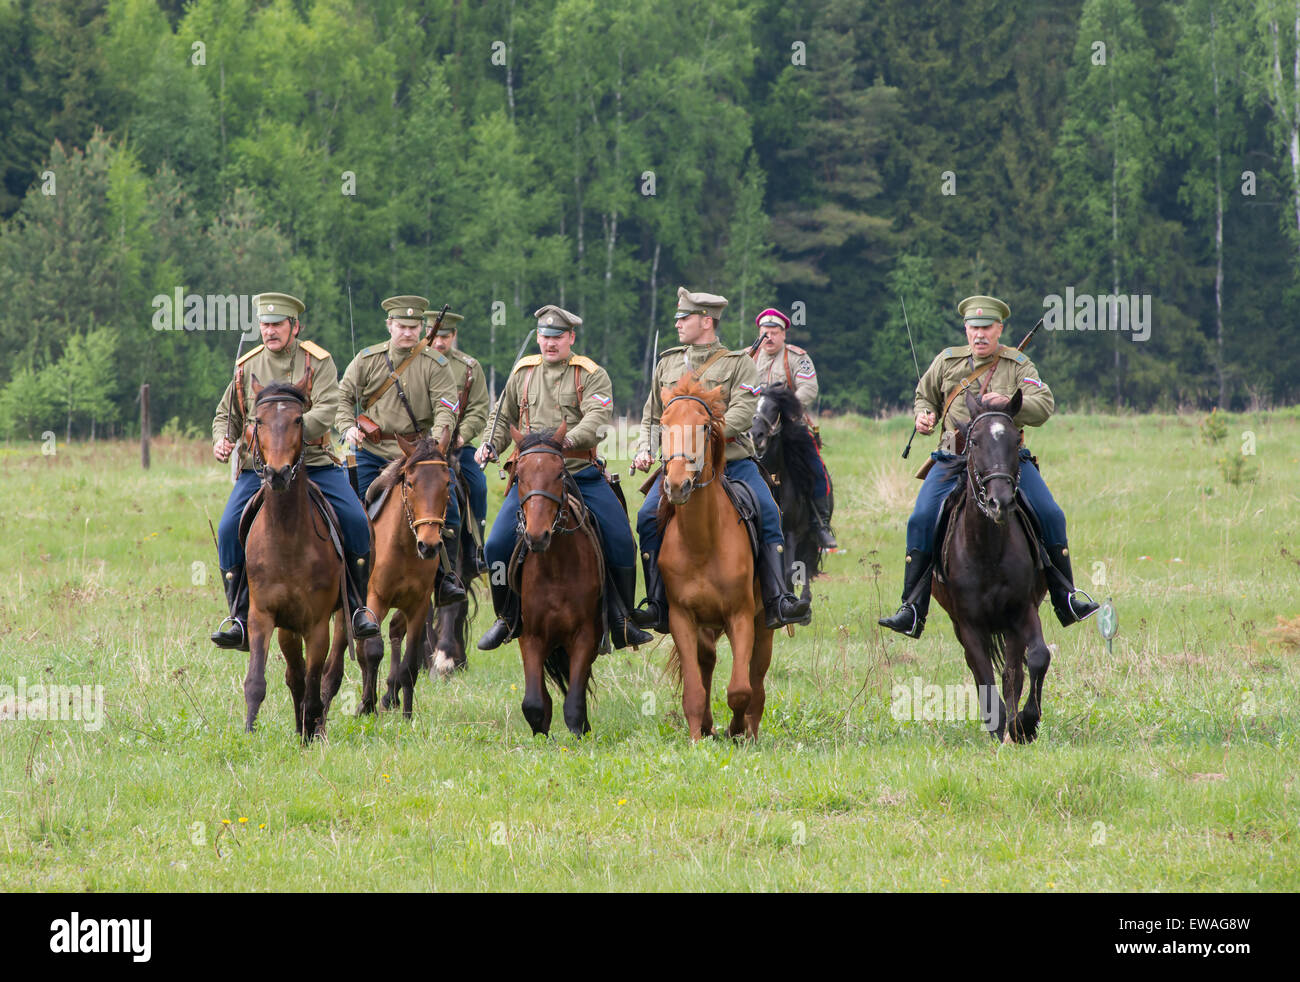 RUSSIA, CHERNOGOLOVKA - MAY 17: Cavalry soldiers ride on horses across the field on History reenactment of battle - Stock Image